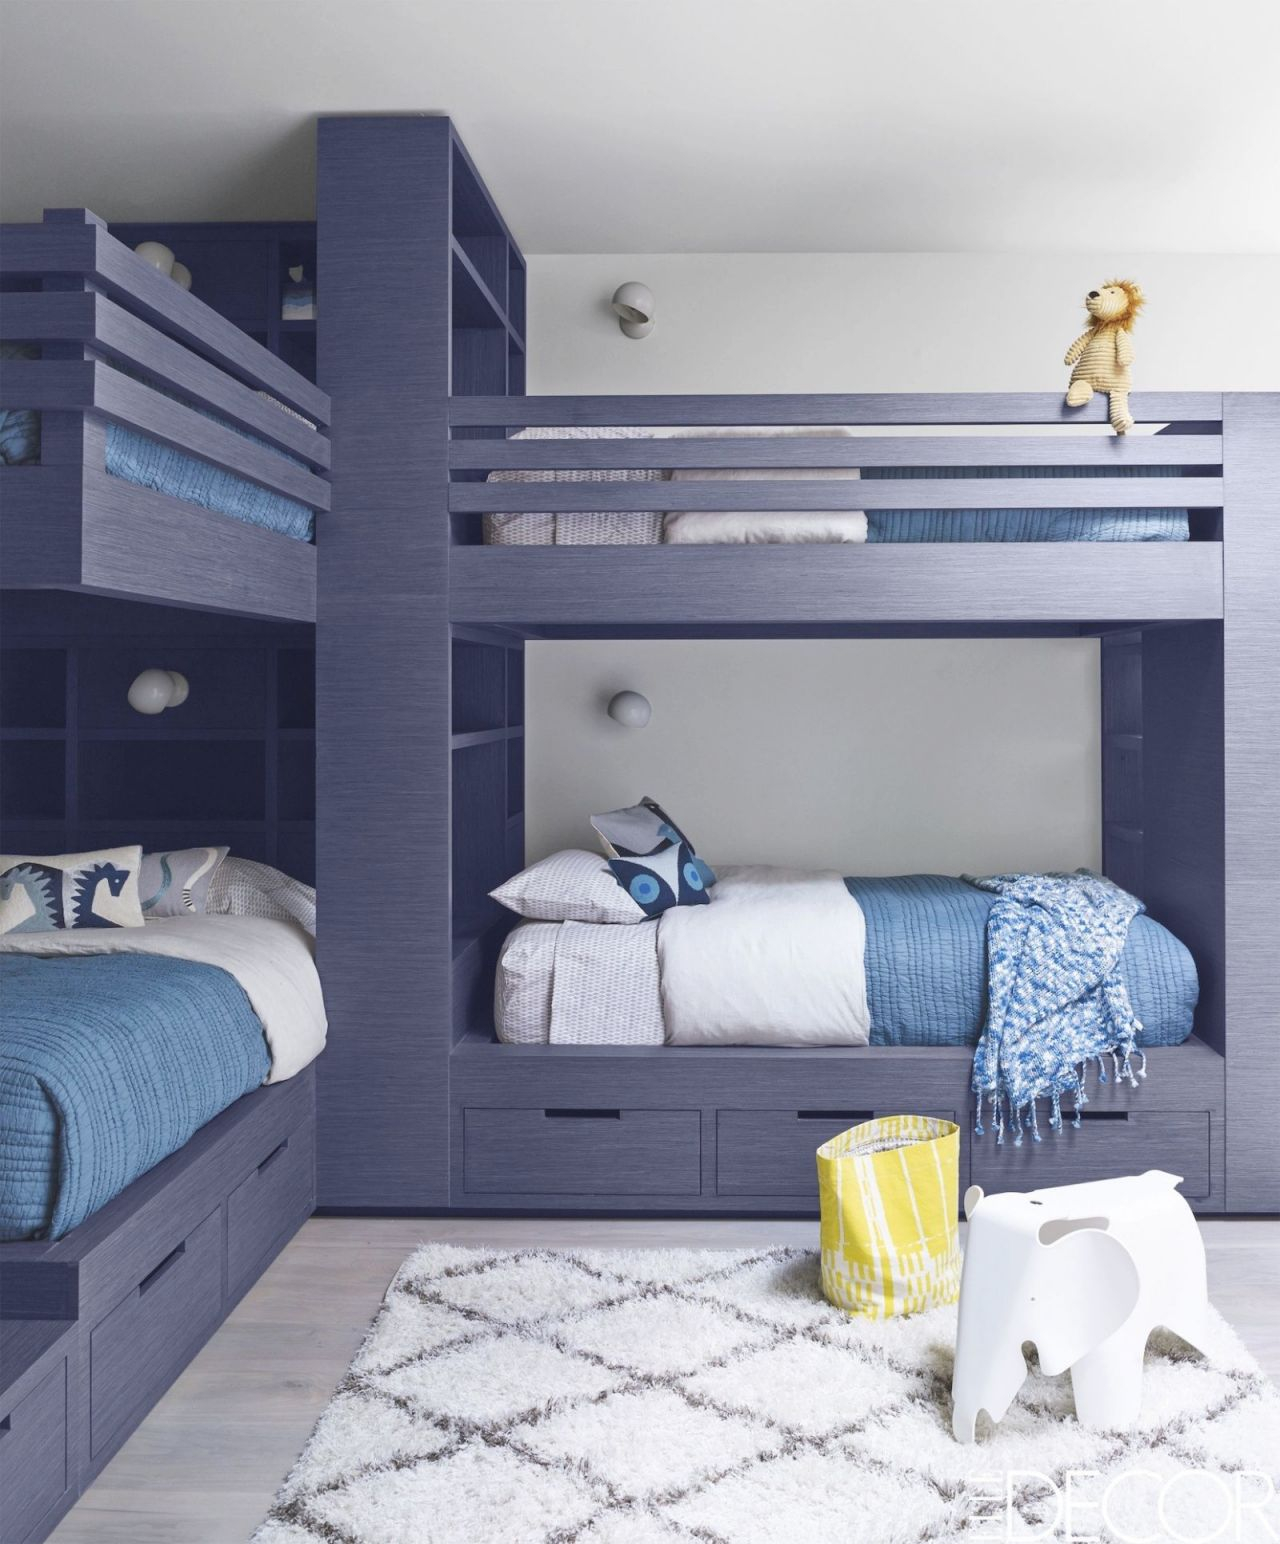 Paint Your Bedroom This Pretty Shade For A Tranquil Vibe within Childrens Bedroom Decor Ideas